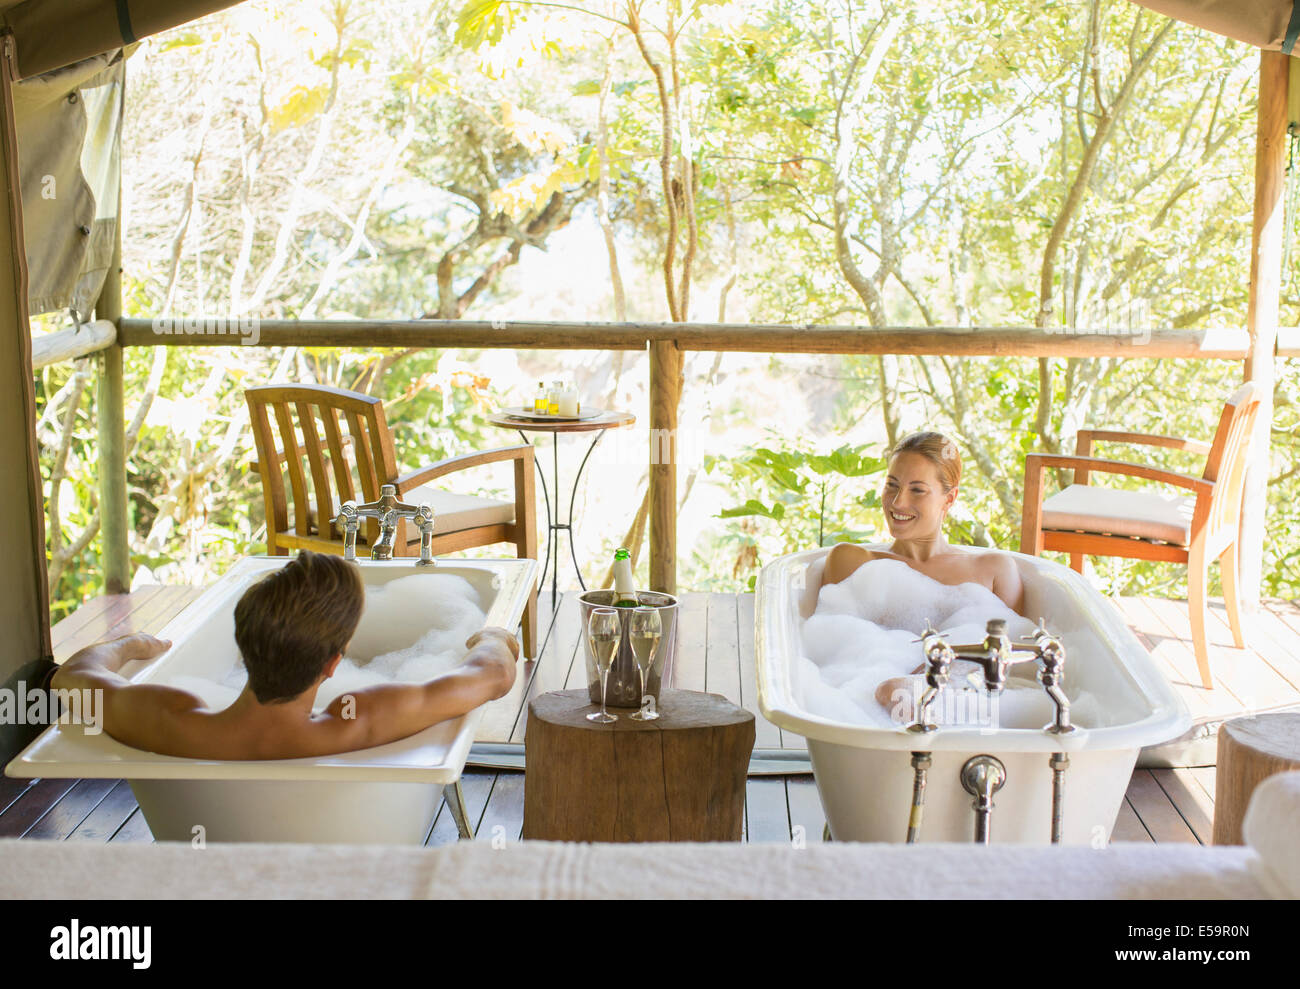 Couple in twin bathtubs in outdoor spa Stock Photo